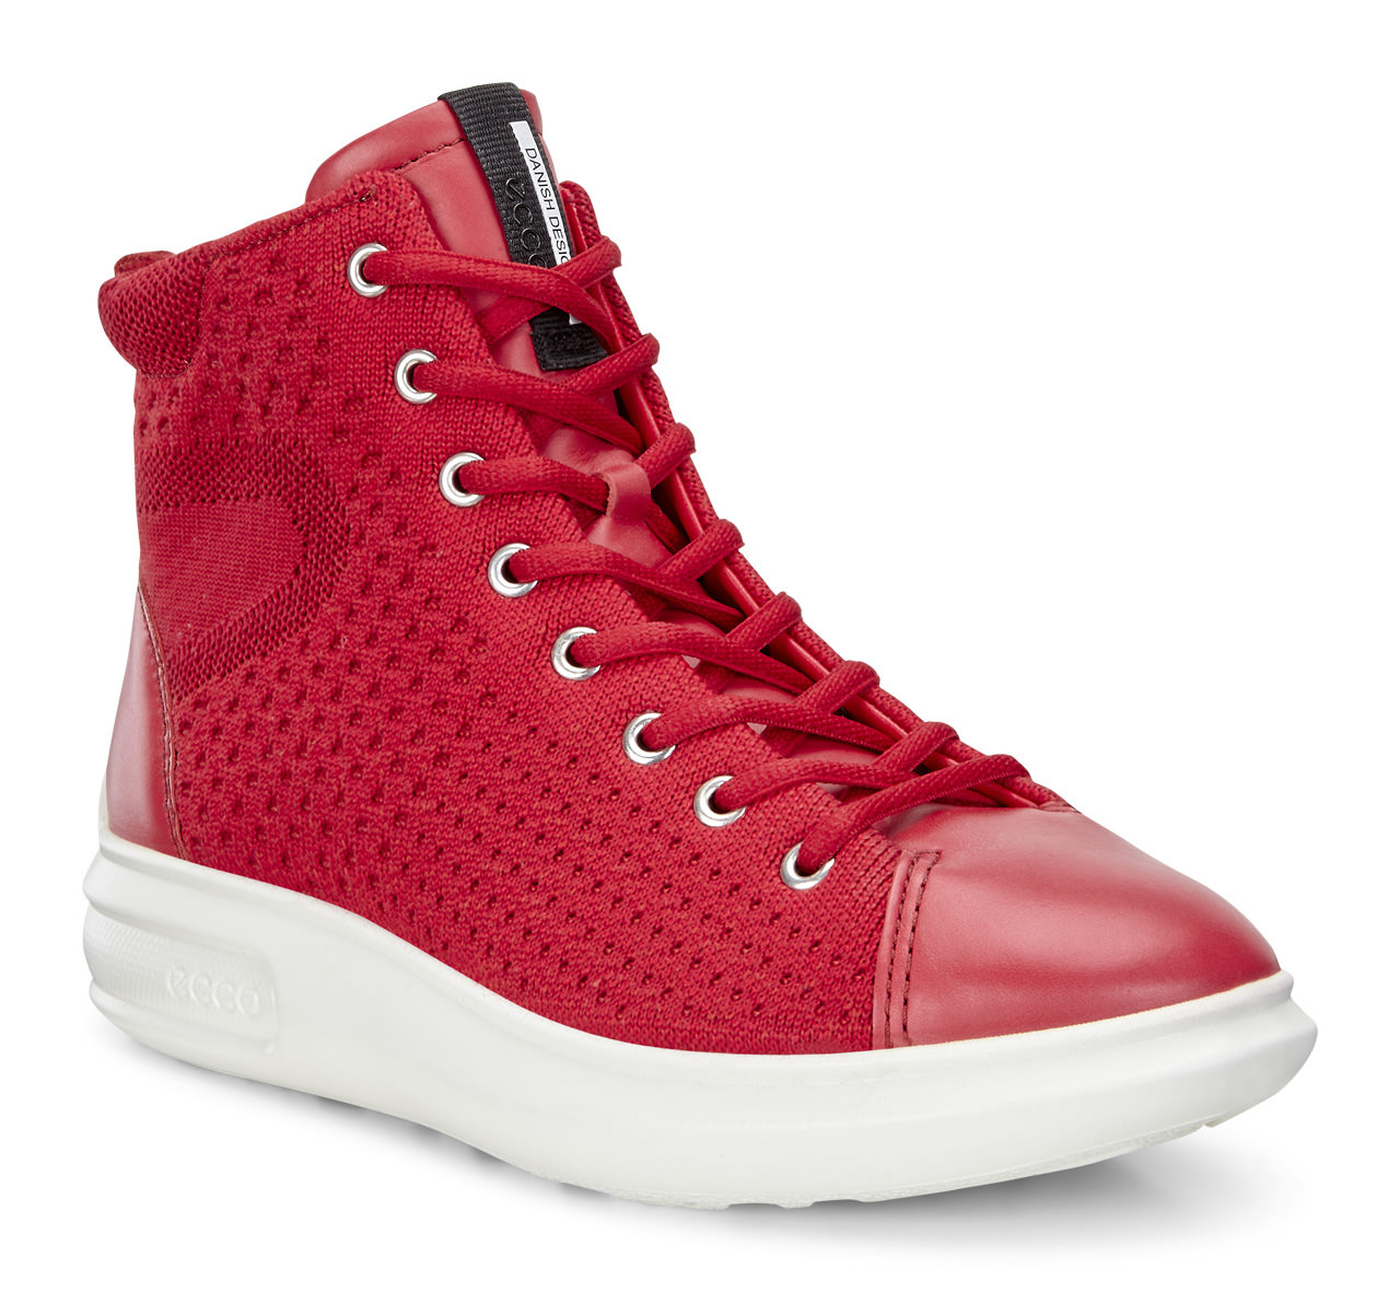 ECCO Womens Soft 3 High Top